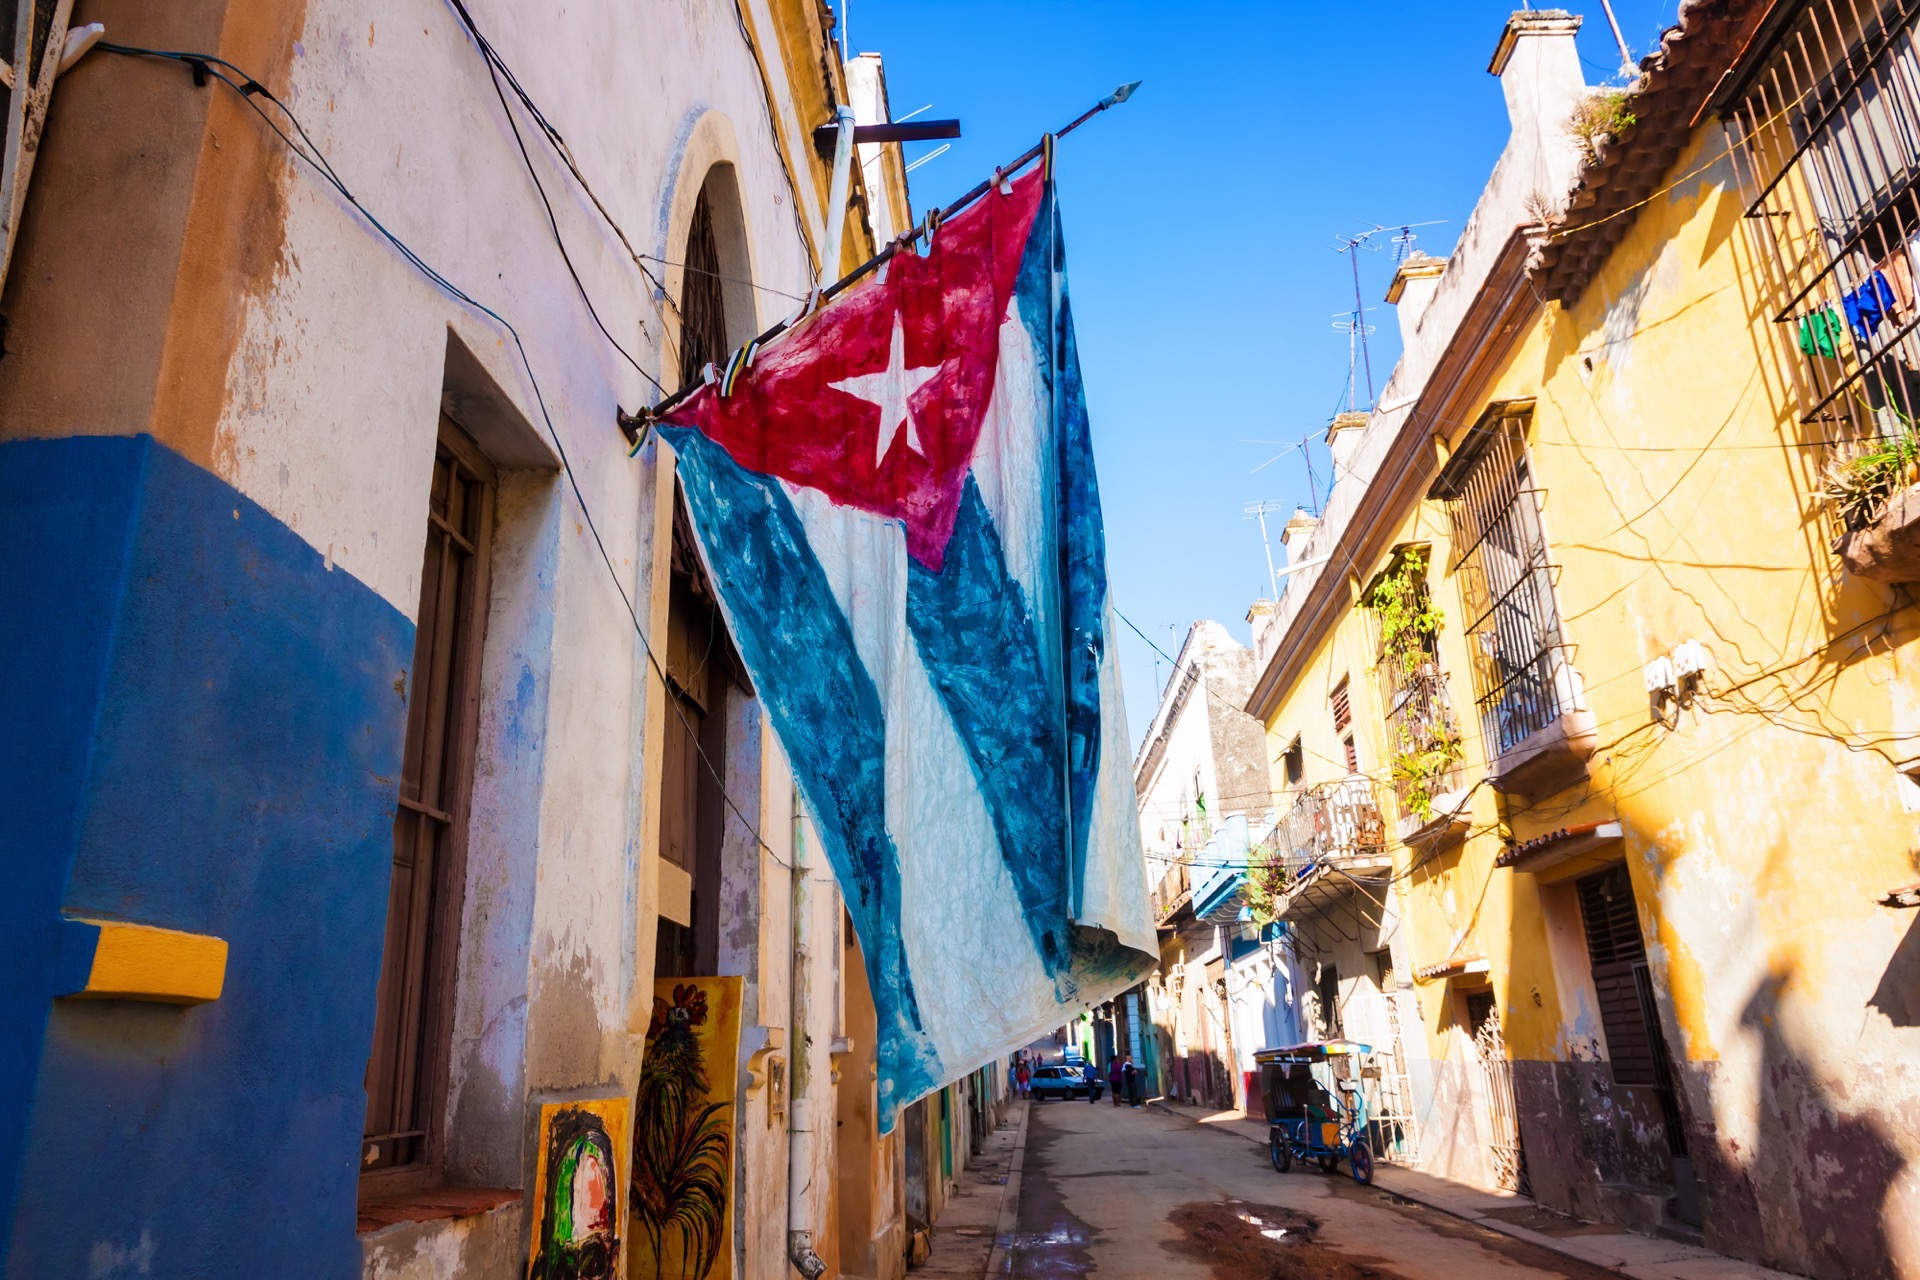 Street sidelined by decaying buildings in Old Havana with a big cuban flag; Shutterstock ID 112151150; name: Chan Tran; Client: Jetblue; Publication: Blog; Story ID: n/a